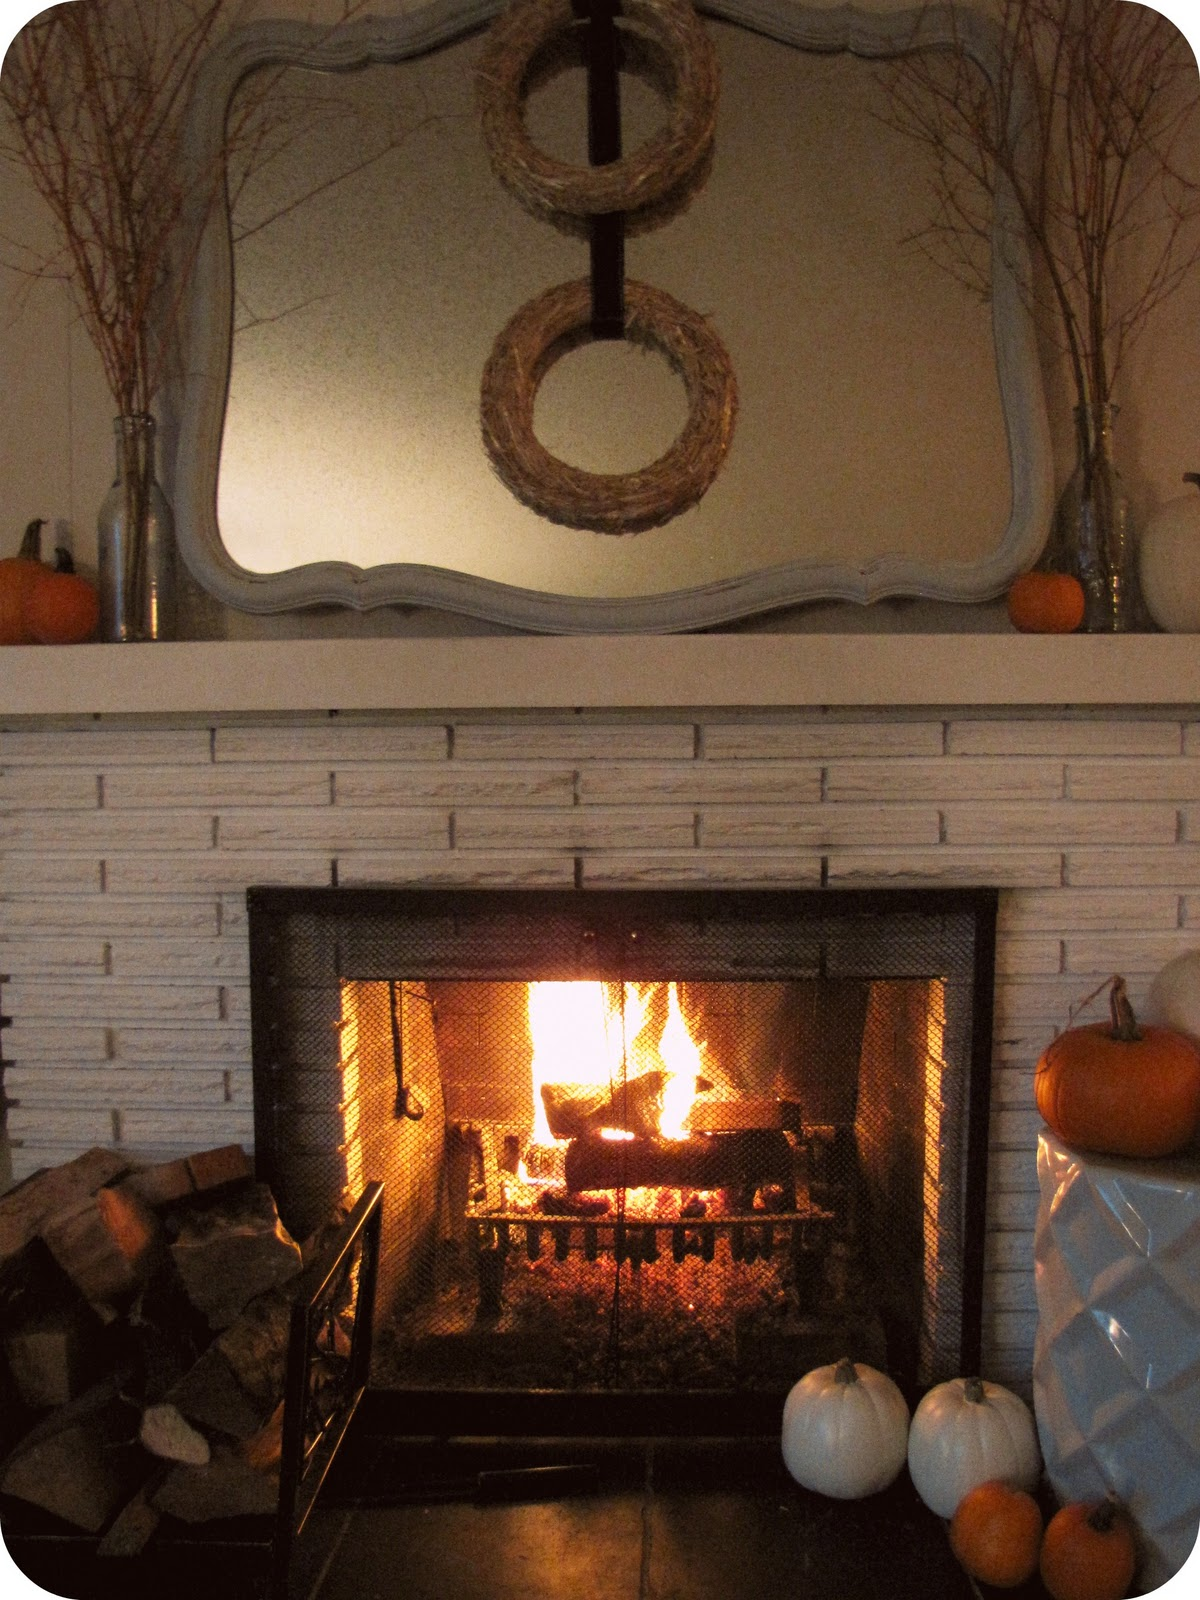 Fall Fireplace Mantel Decorating Ideas: My House Of Giggles: Fall Mantel .... Two Little Straw